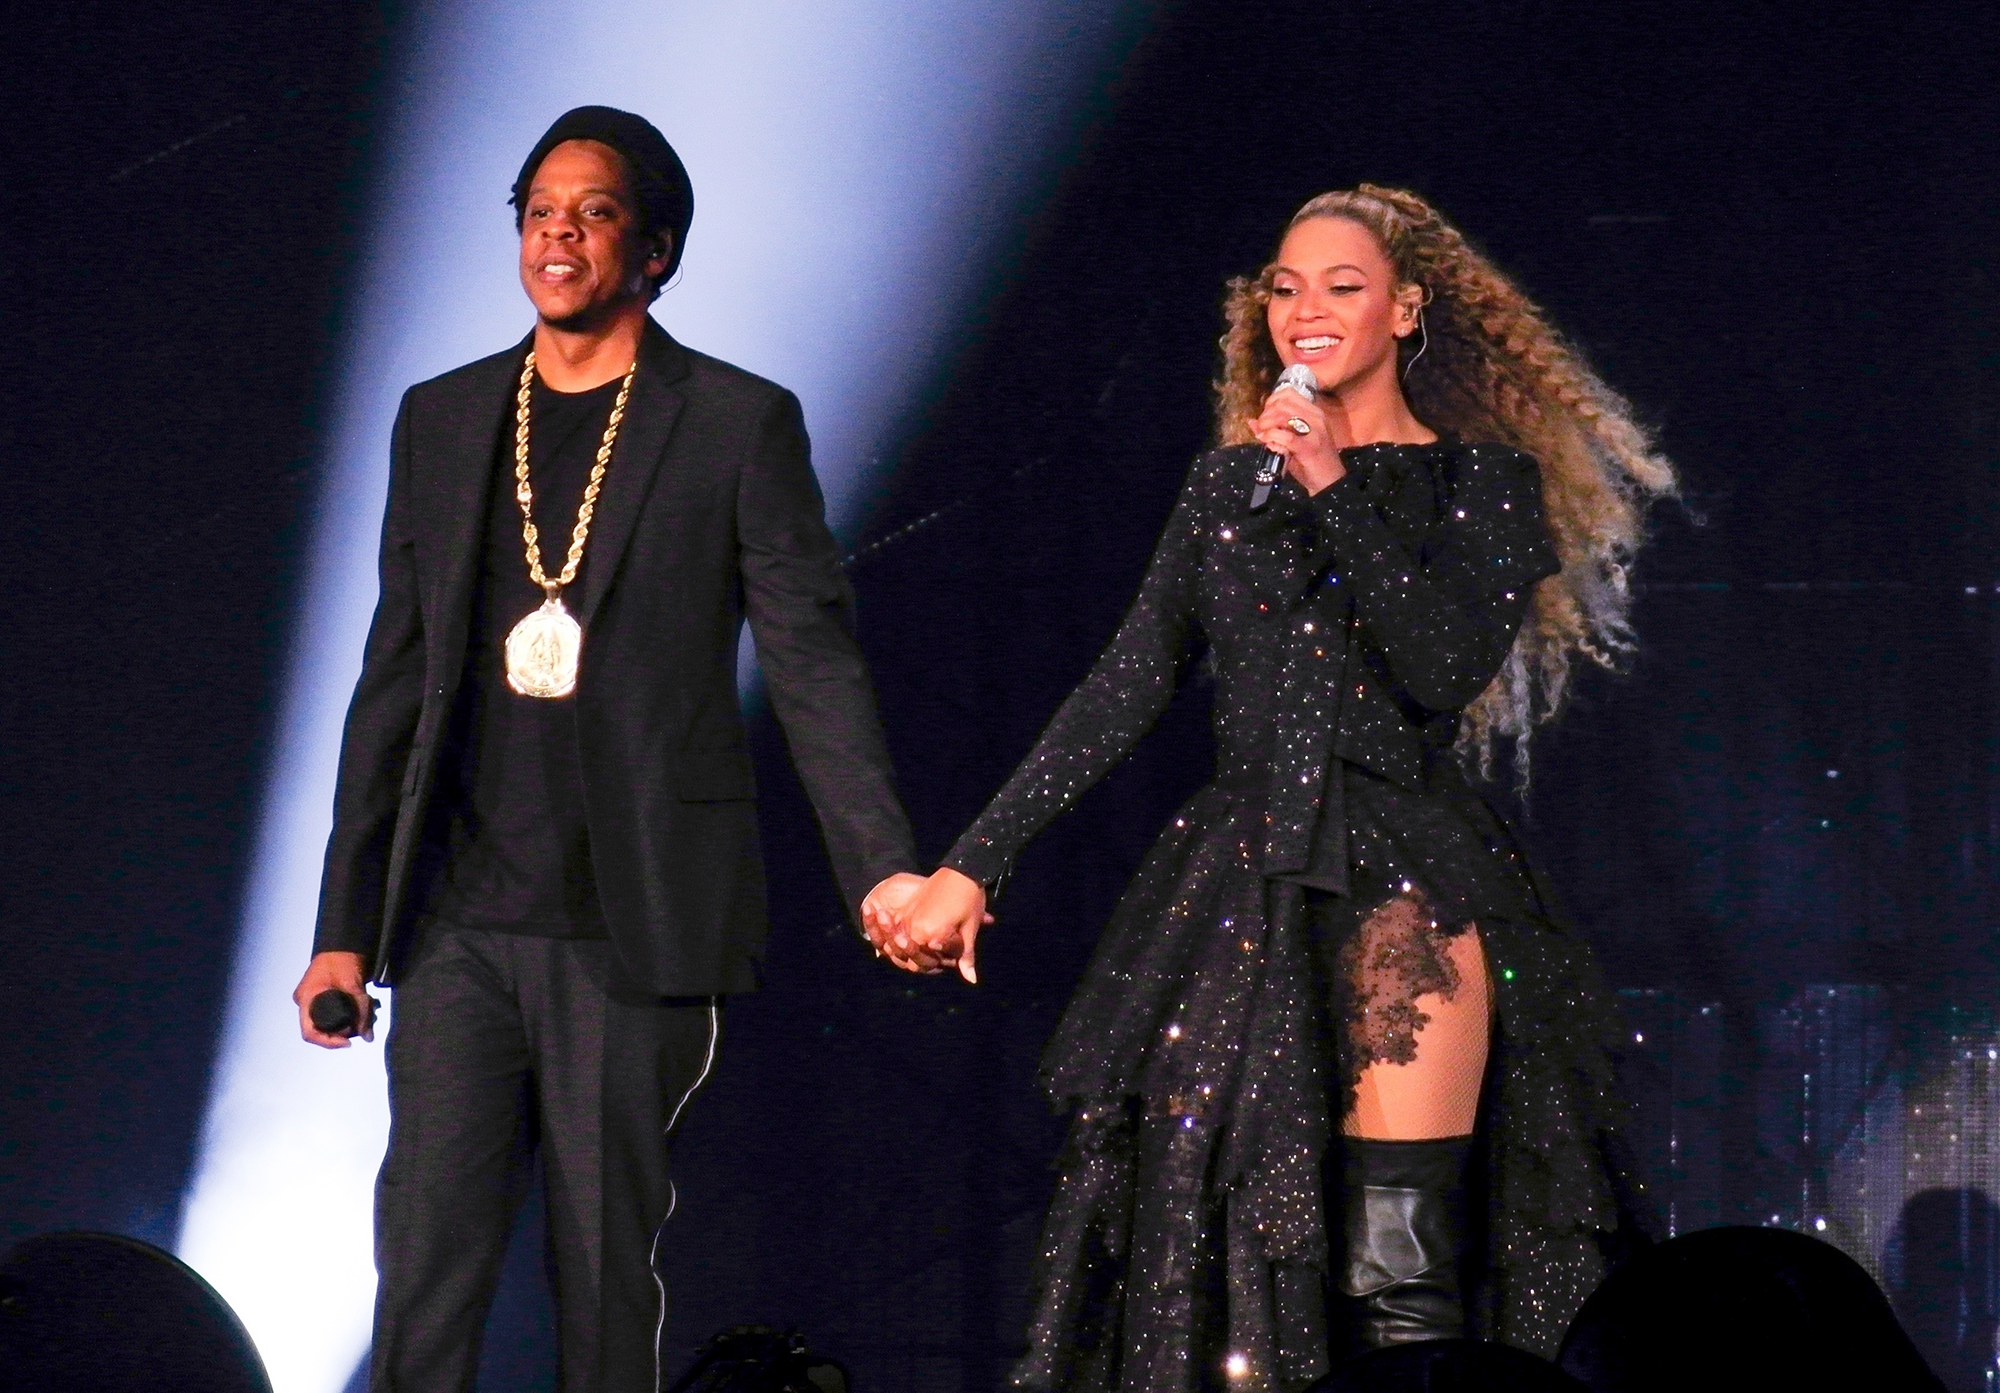 Beyonce and Jay Z open their world tour in Cardiff